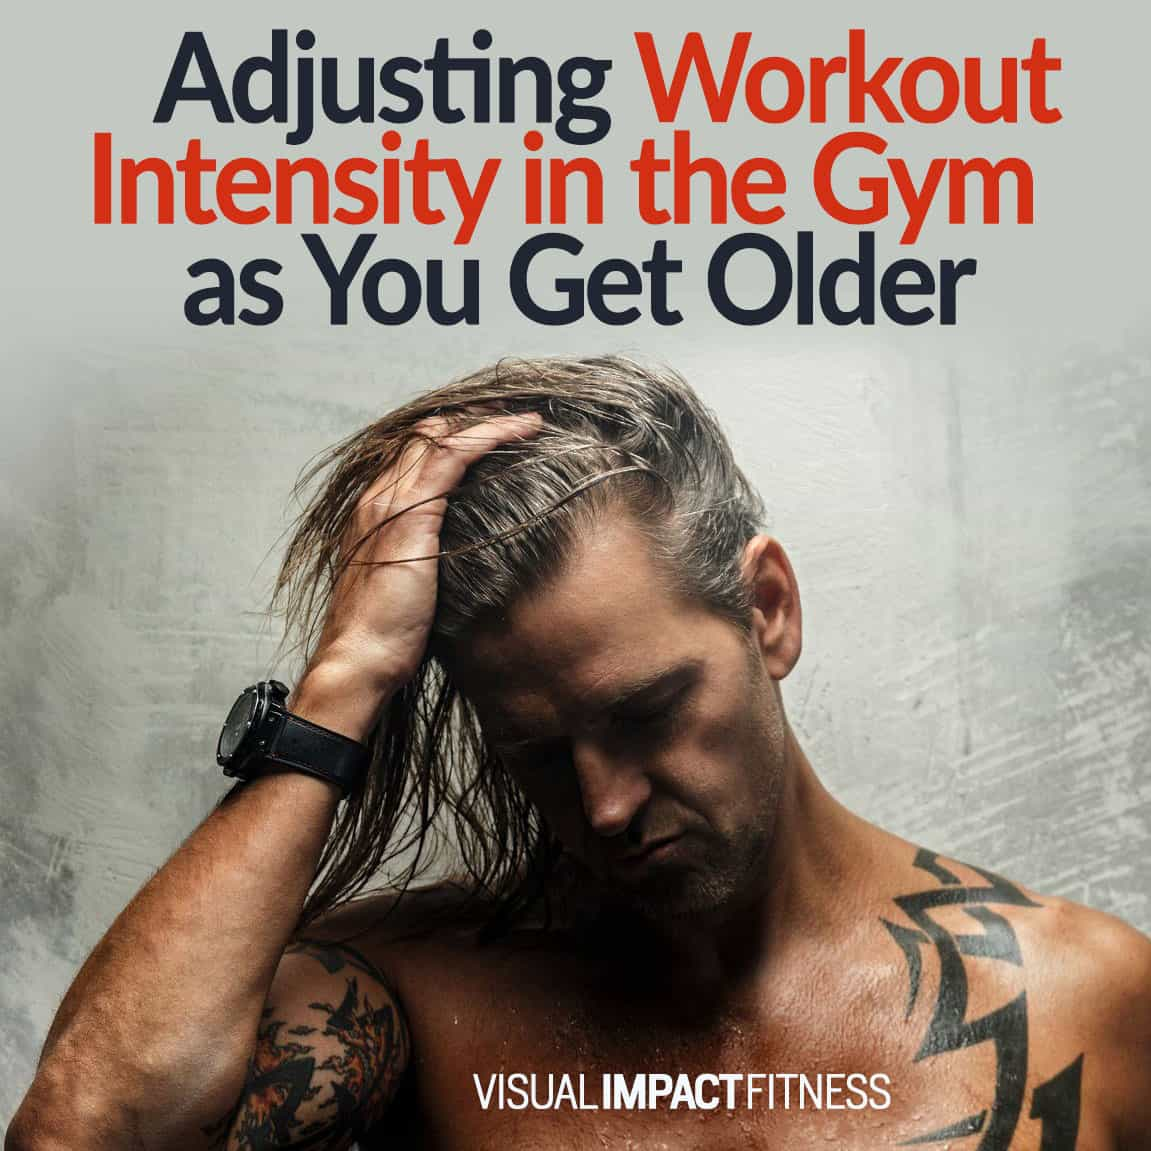 Adjusting Workout Intensity in the Gym as You Get Older